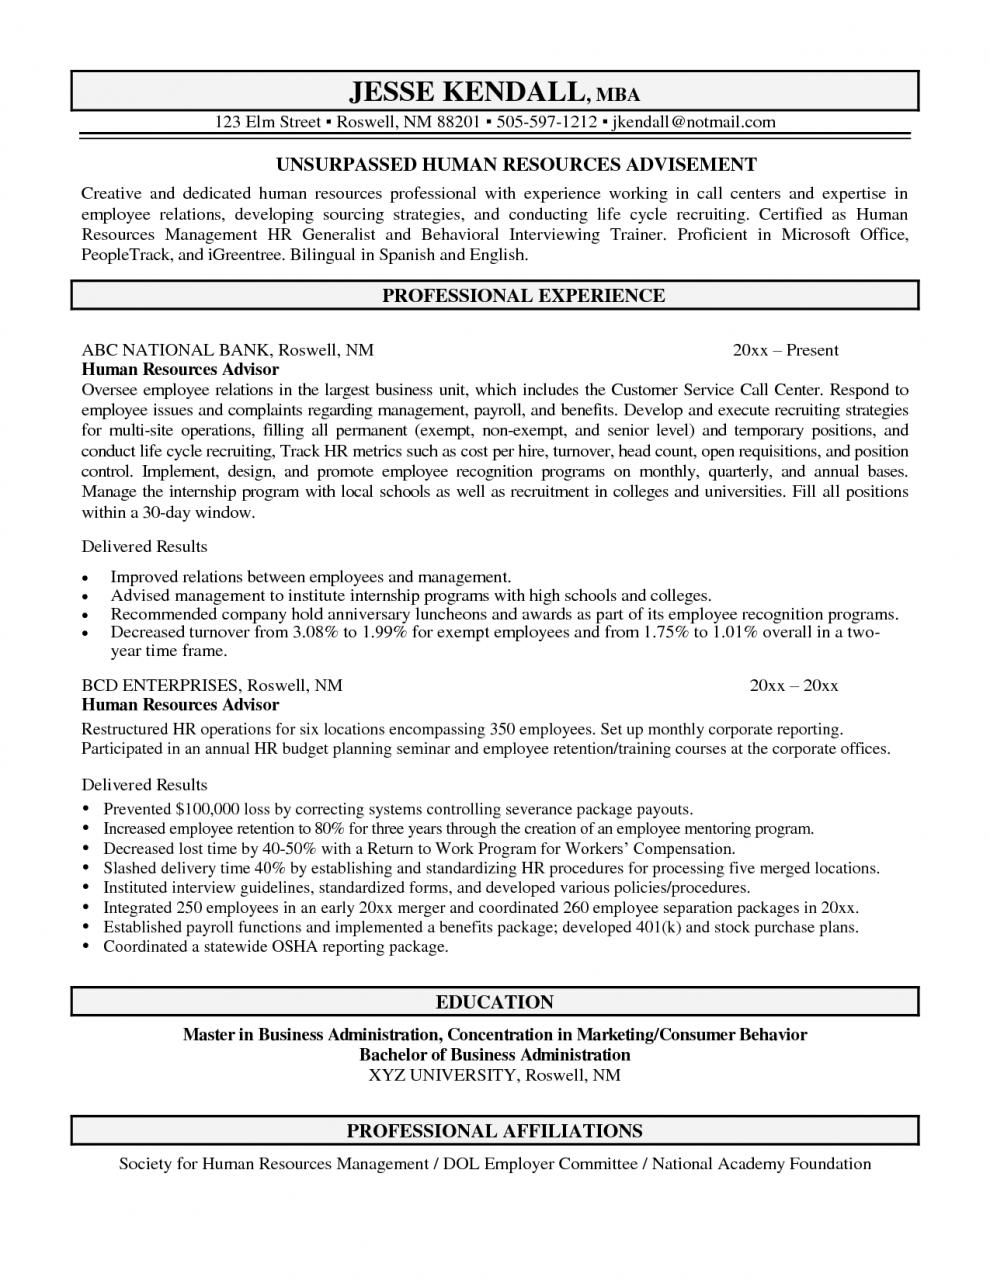 Format Of A Resume For Job Application Letter Cover Job Application Template For Human Resources Resume How .